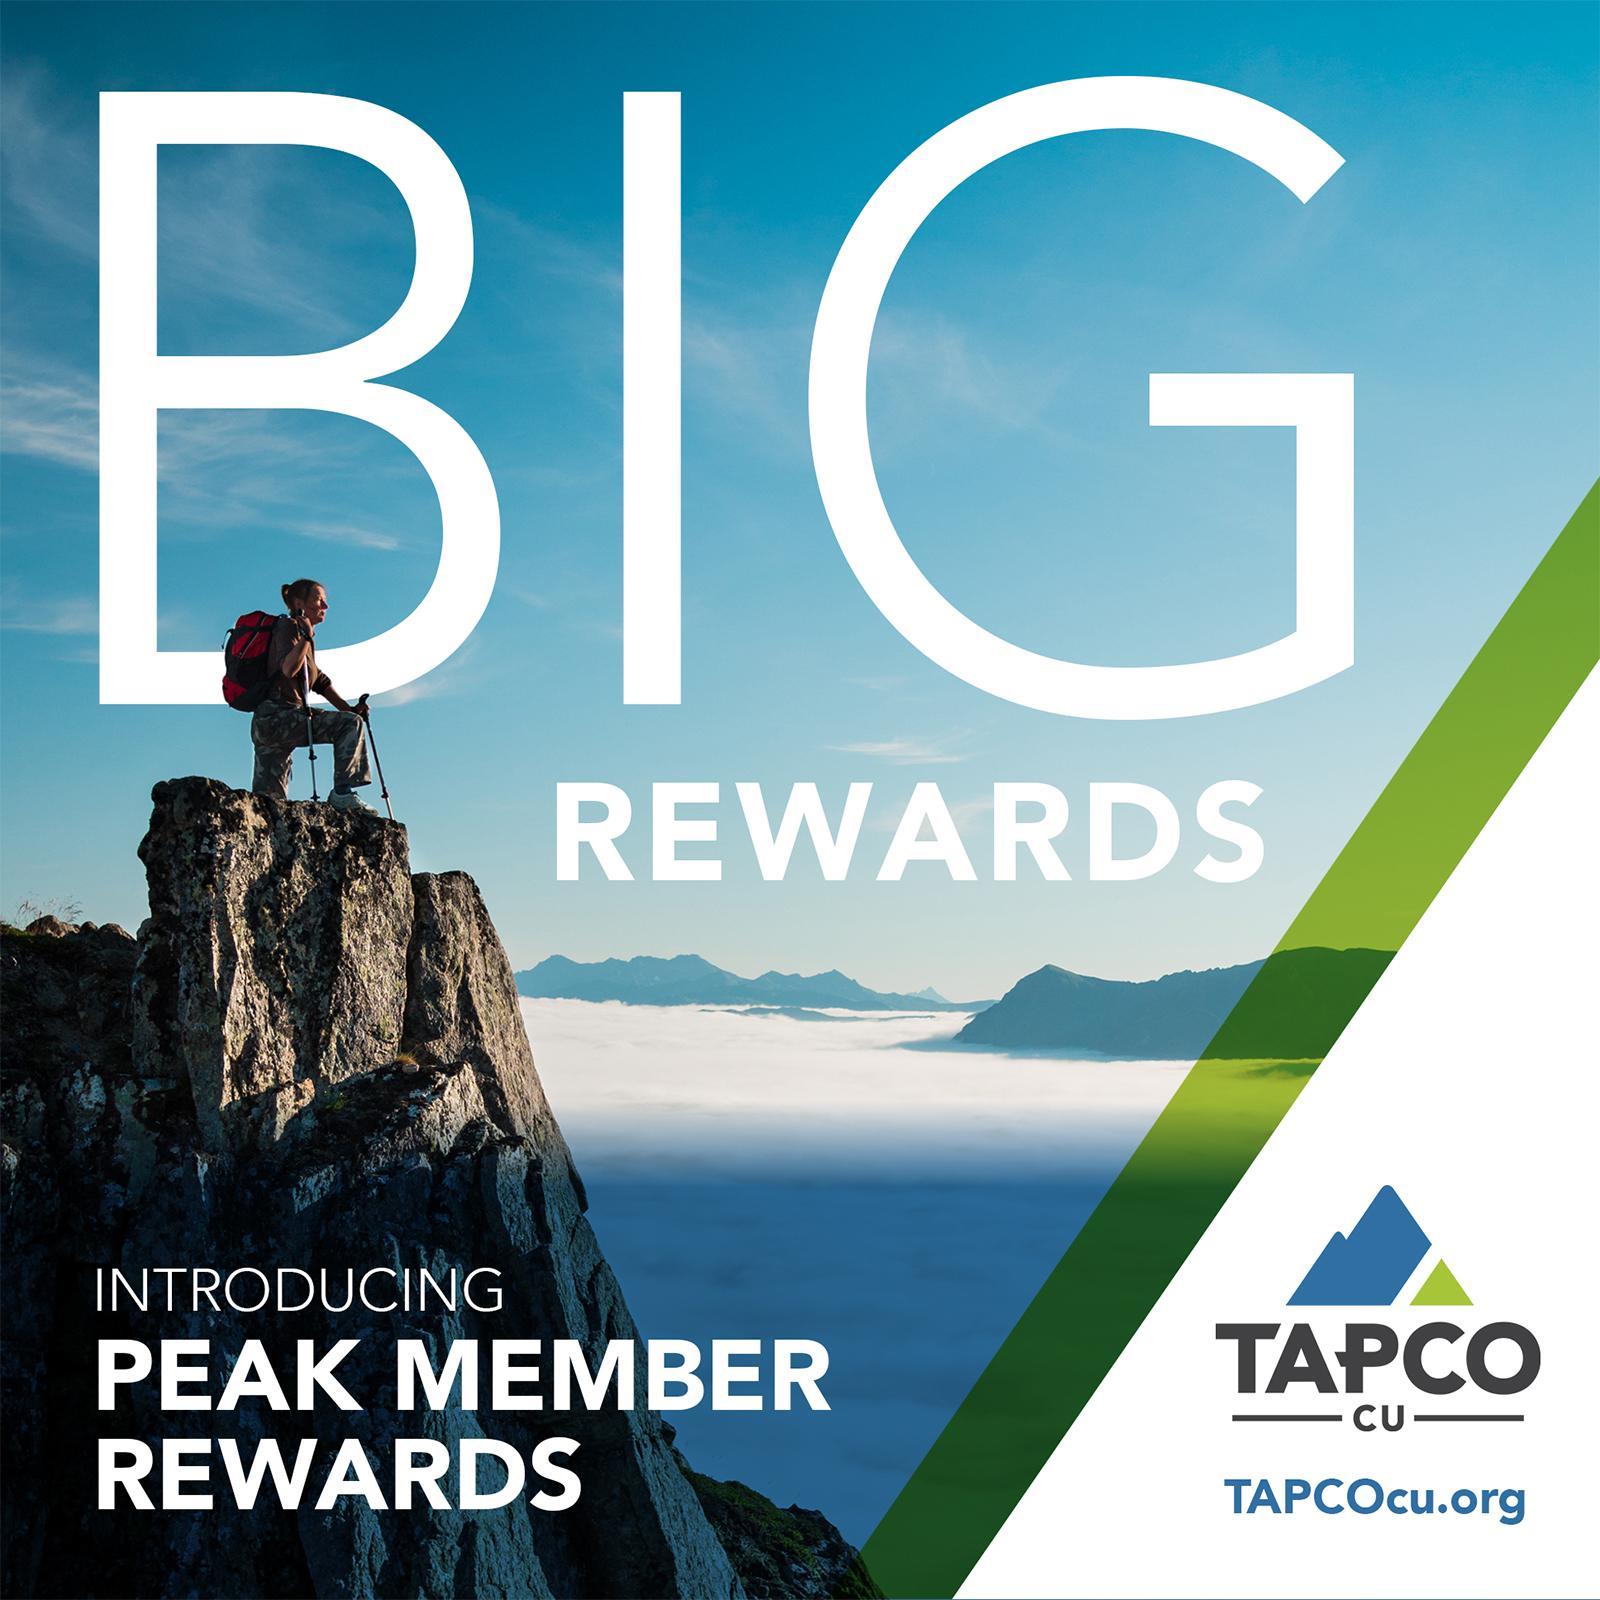 TAPCO Peak Members Rewards